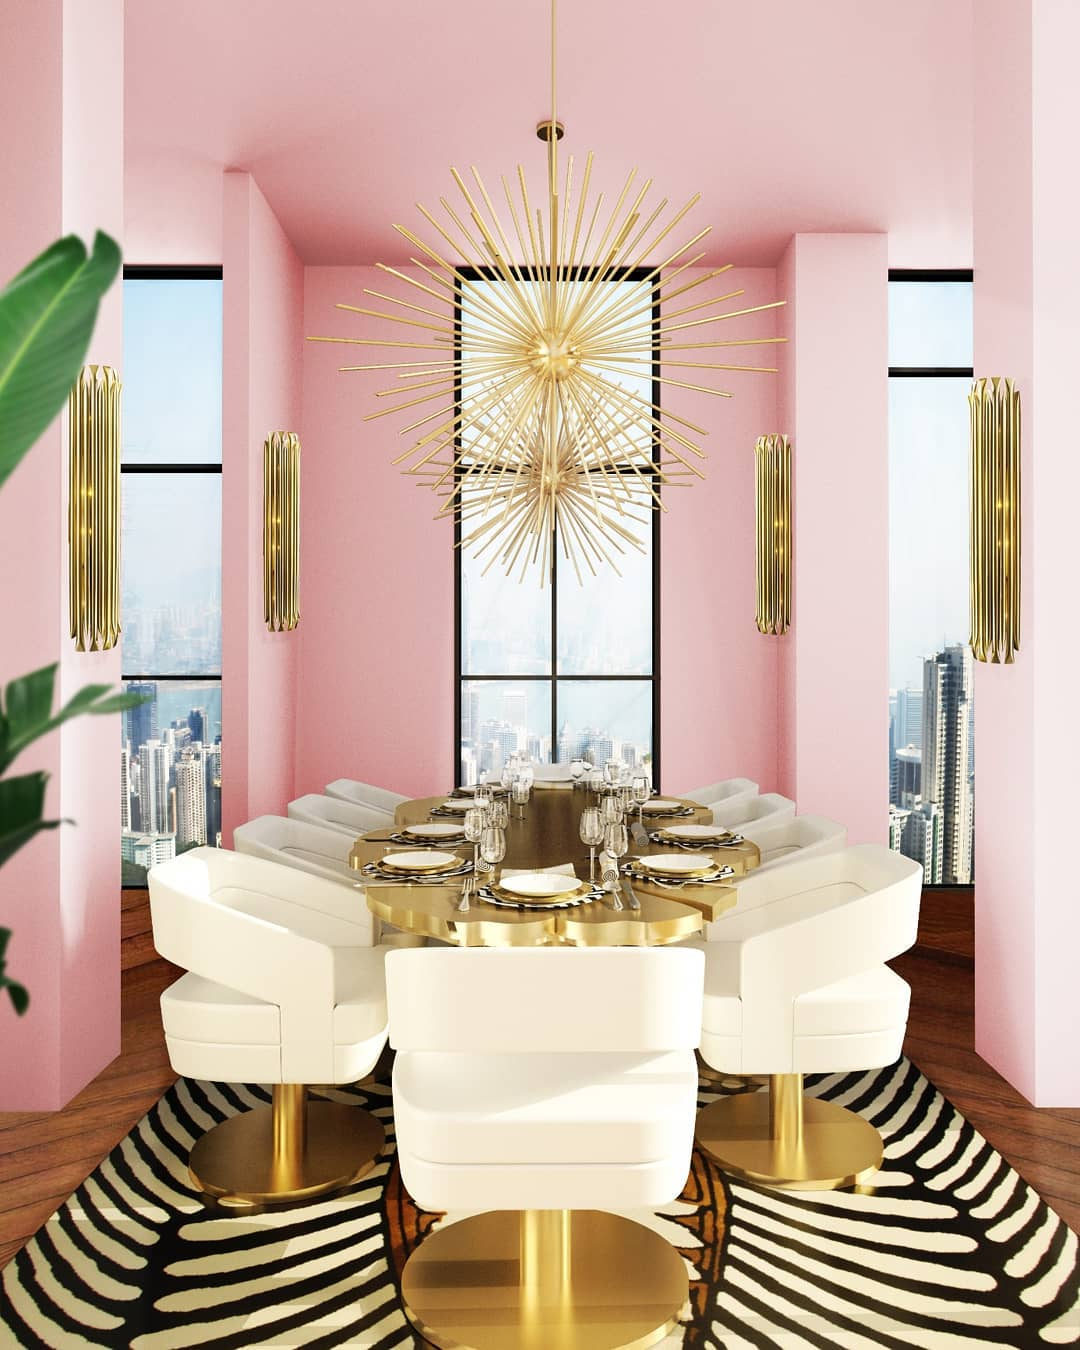 NOTHING LIKE A DINING ROOM WITH A LUXURY TOUCH